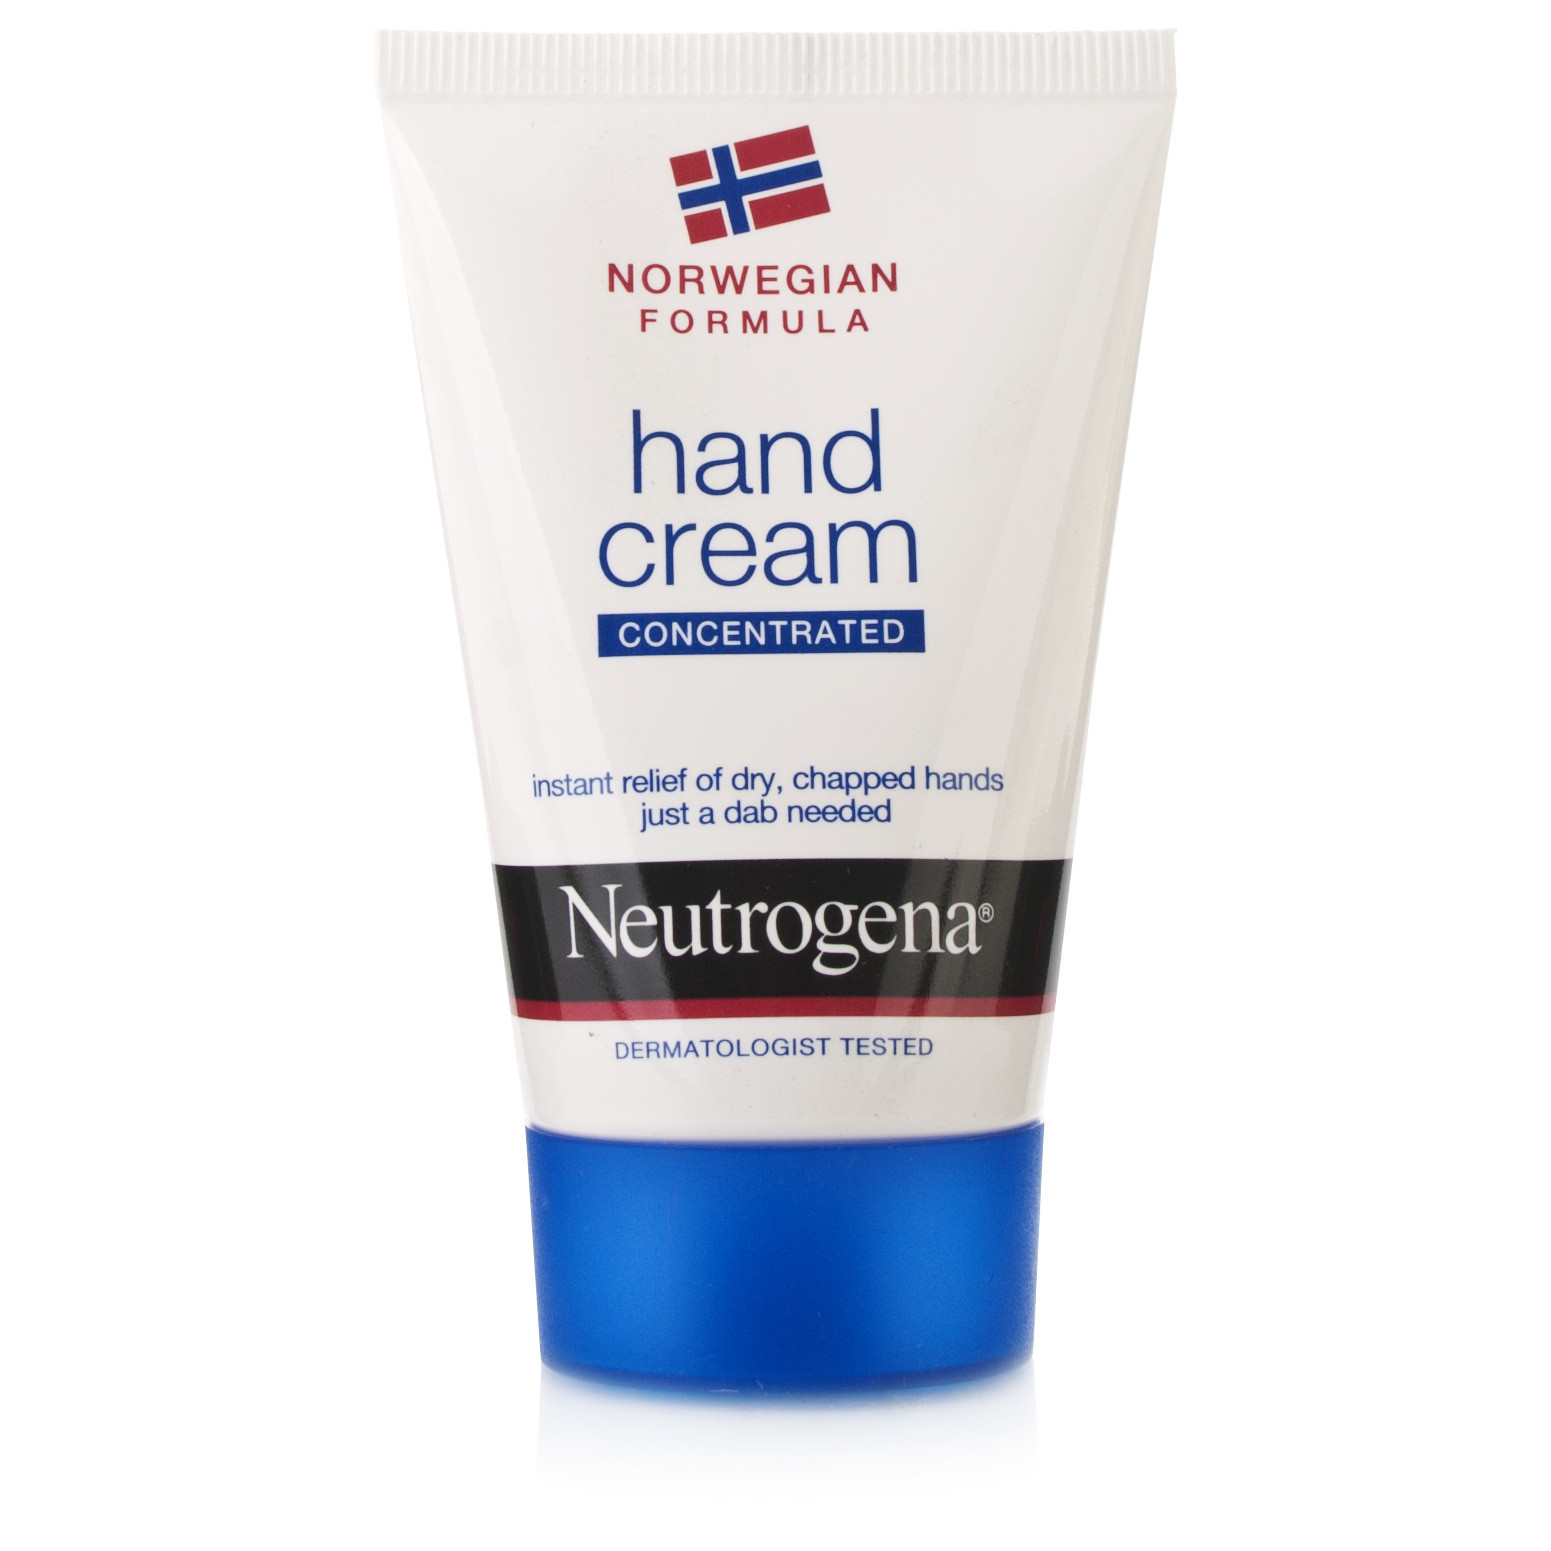 Neutrogena Norwegian Formula Concentrated Hand Cream